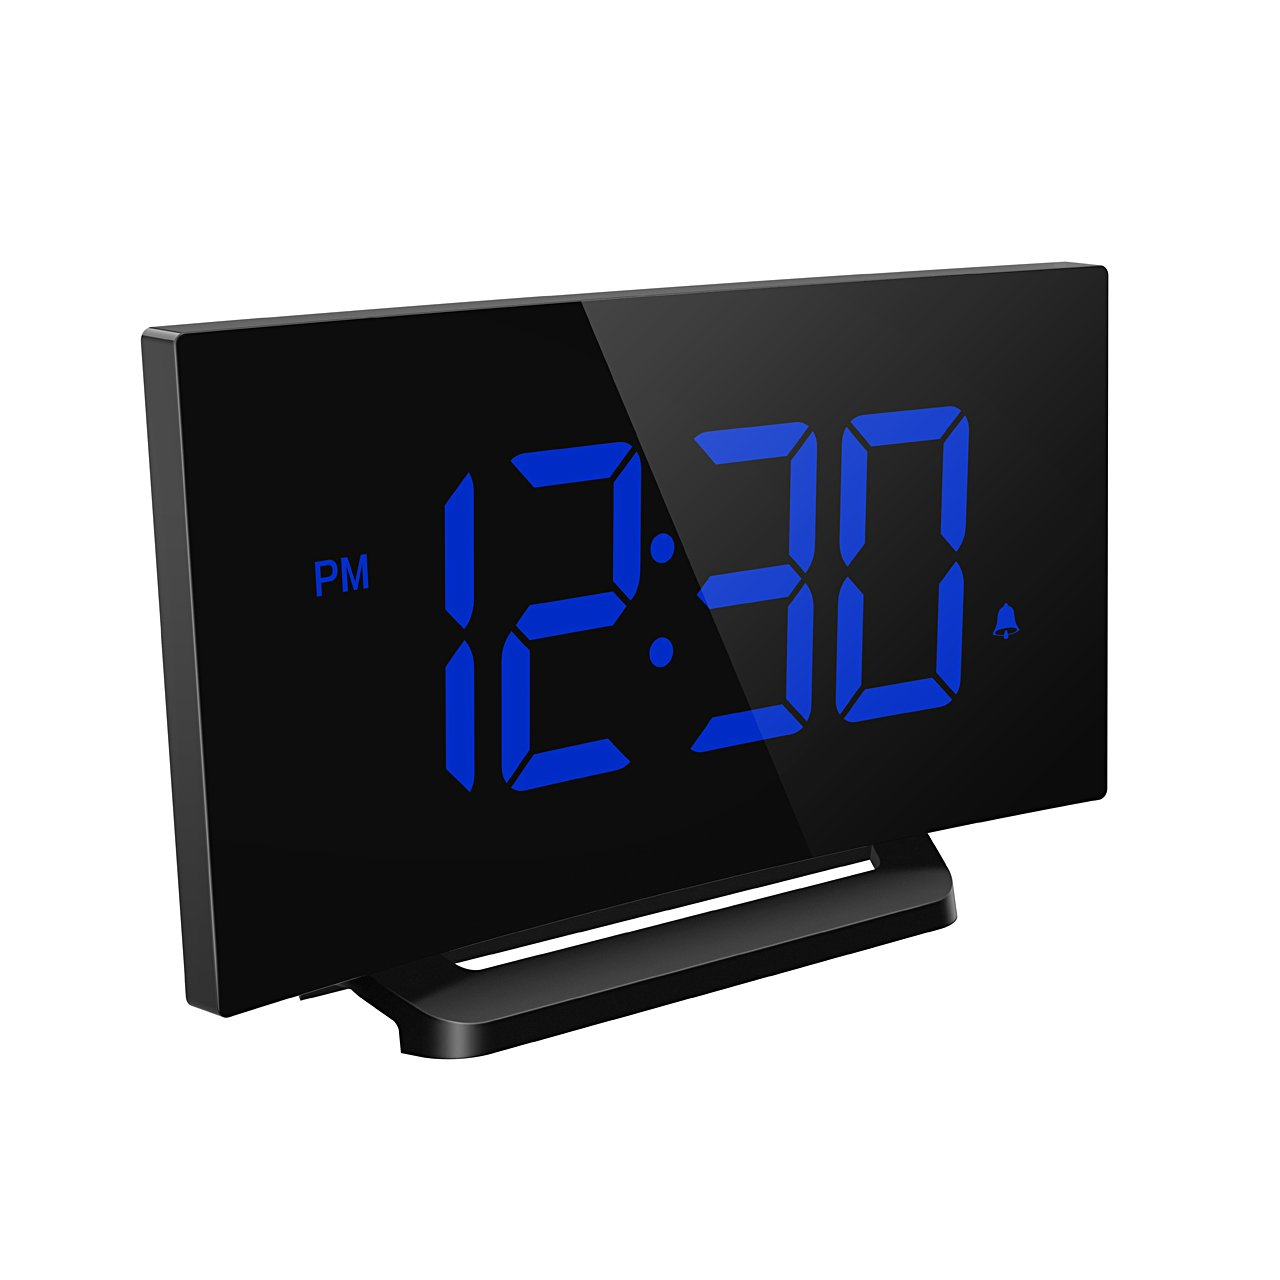 Mpow Digital Alarm Clock, Curved screen Clock with 3.75'' LED Dimmer Digits Display, Bedside Alarm Clock with 3 Alarm Sounds, 30 Minute Ring Time, 12/24 Hour, Backup for Clock Setting [Blue] ARIES